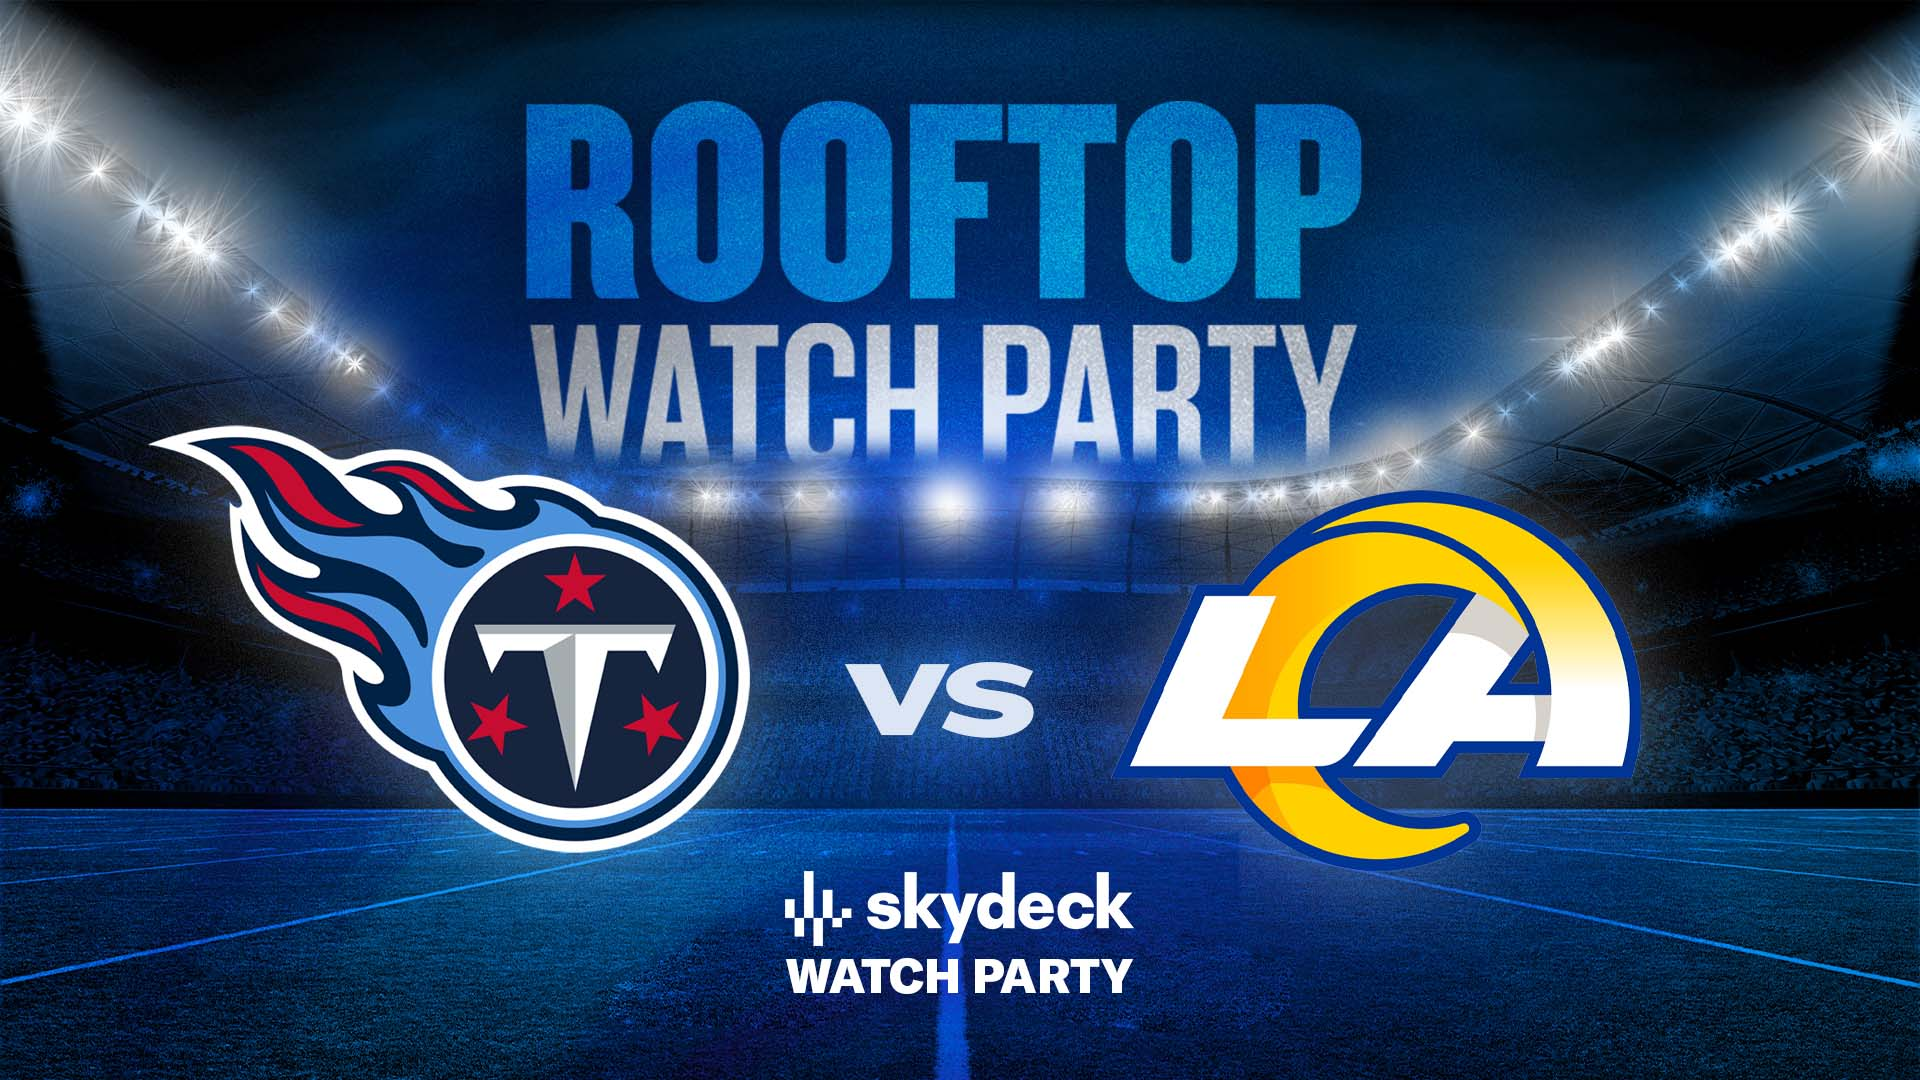 Promo image of Titans vs. Rams Skydeck Watch Party